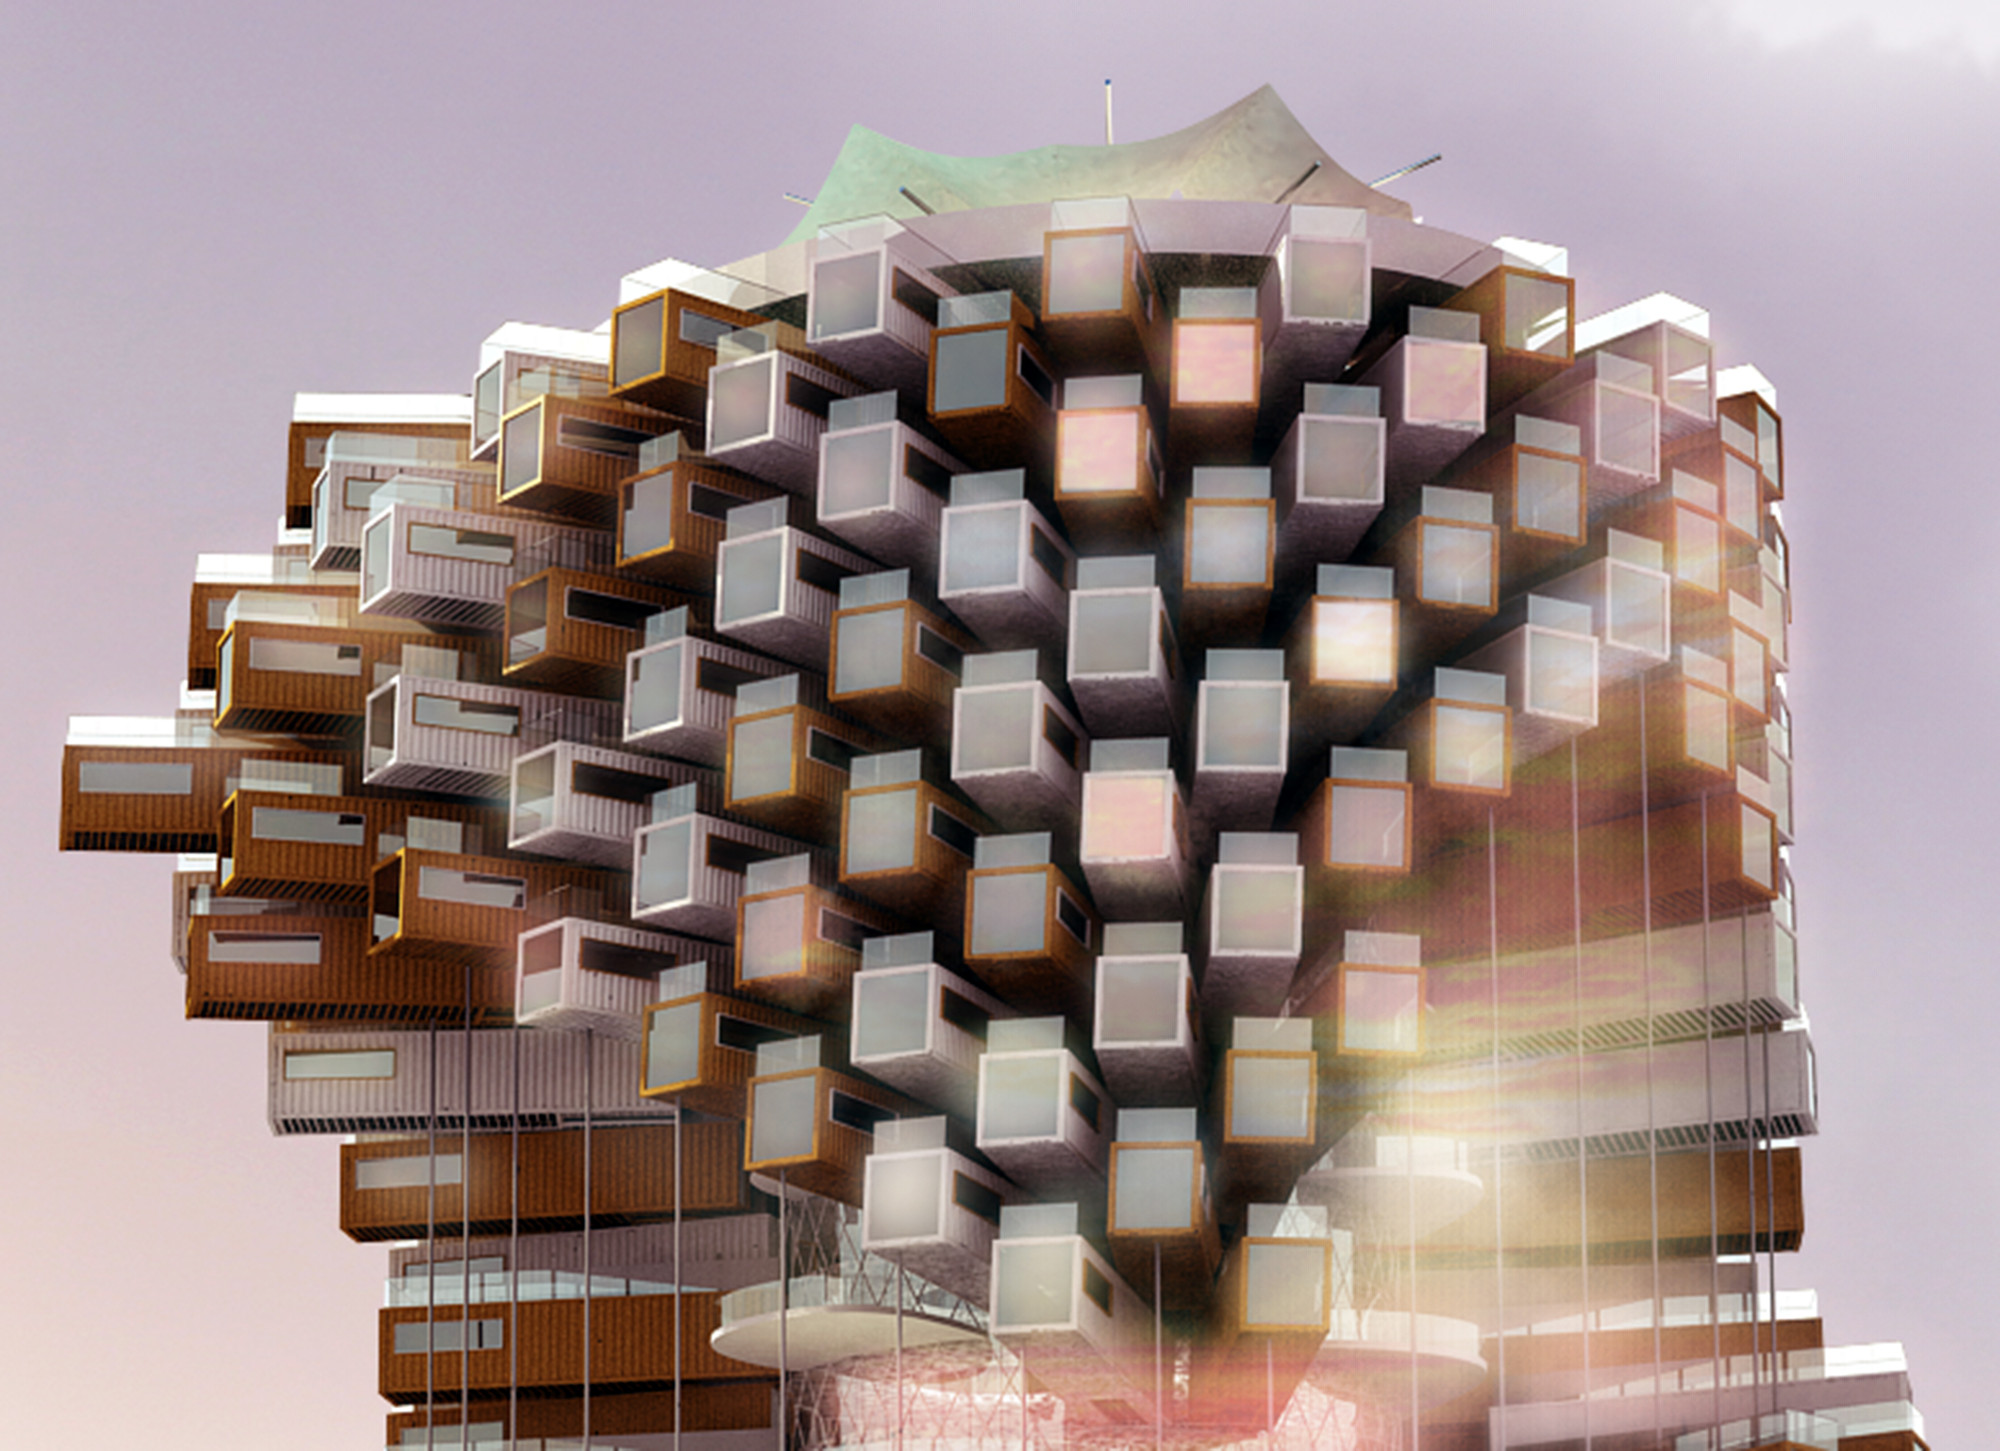 M-Rad Proposes Live-Work Towers to Revitalize Downtown Las Vegas